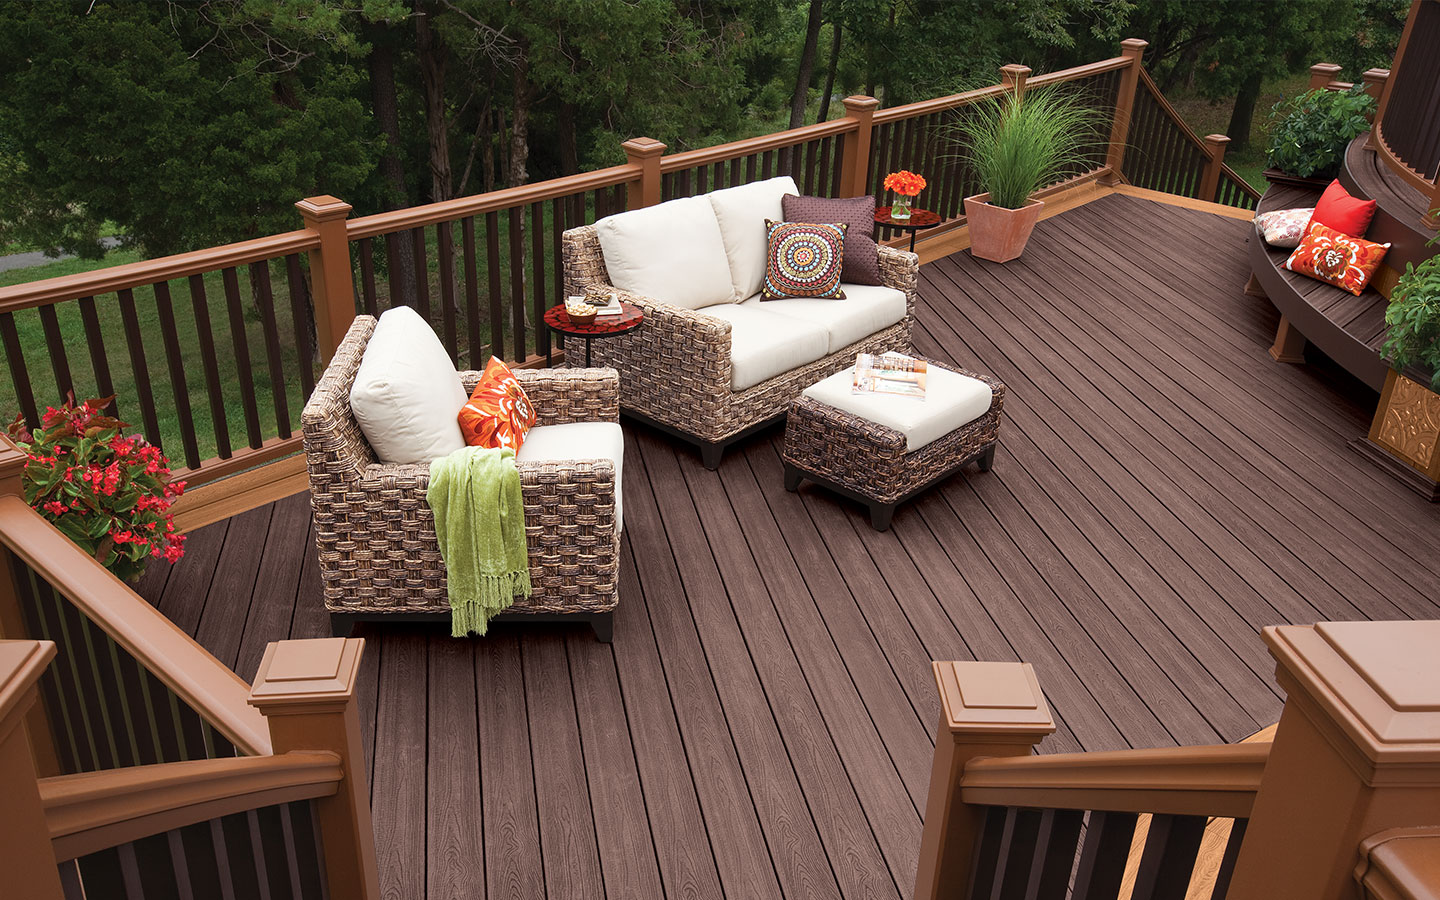 deck designs the standard rectangular deck design allows for maximum use of space and CSYNHYI